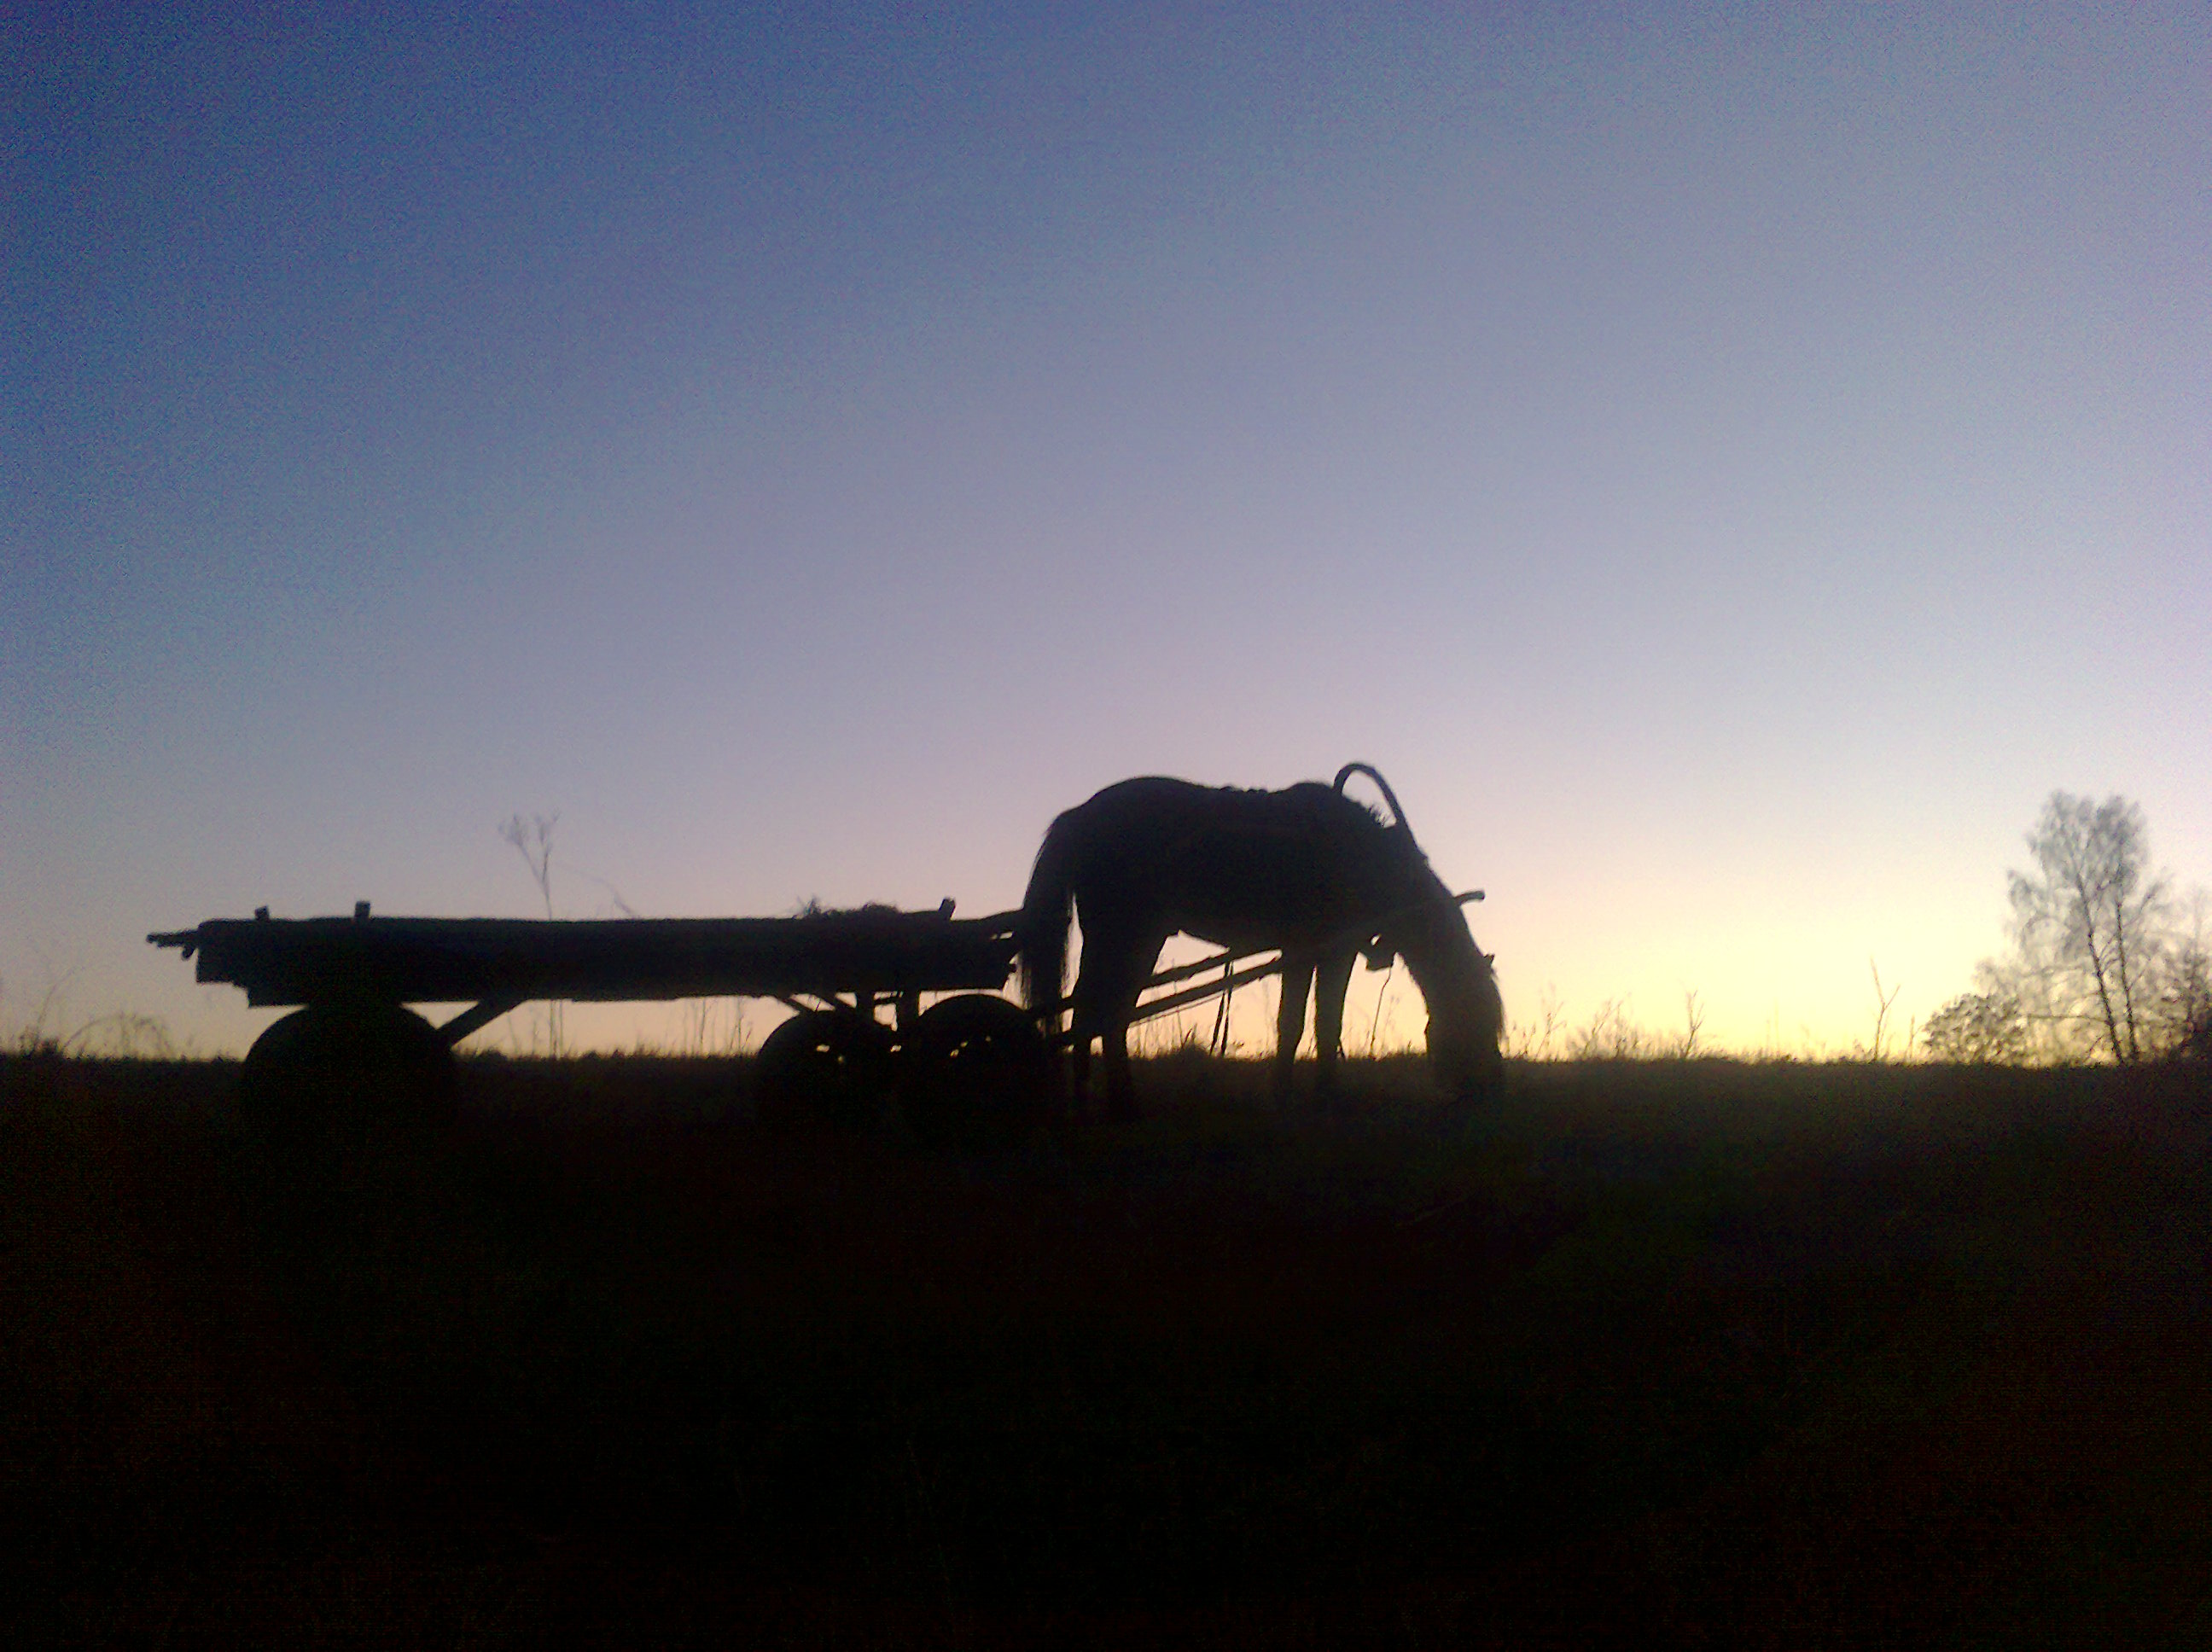 Sunset, silhouette of a horse in the rays of the setting sun – photo